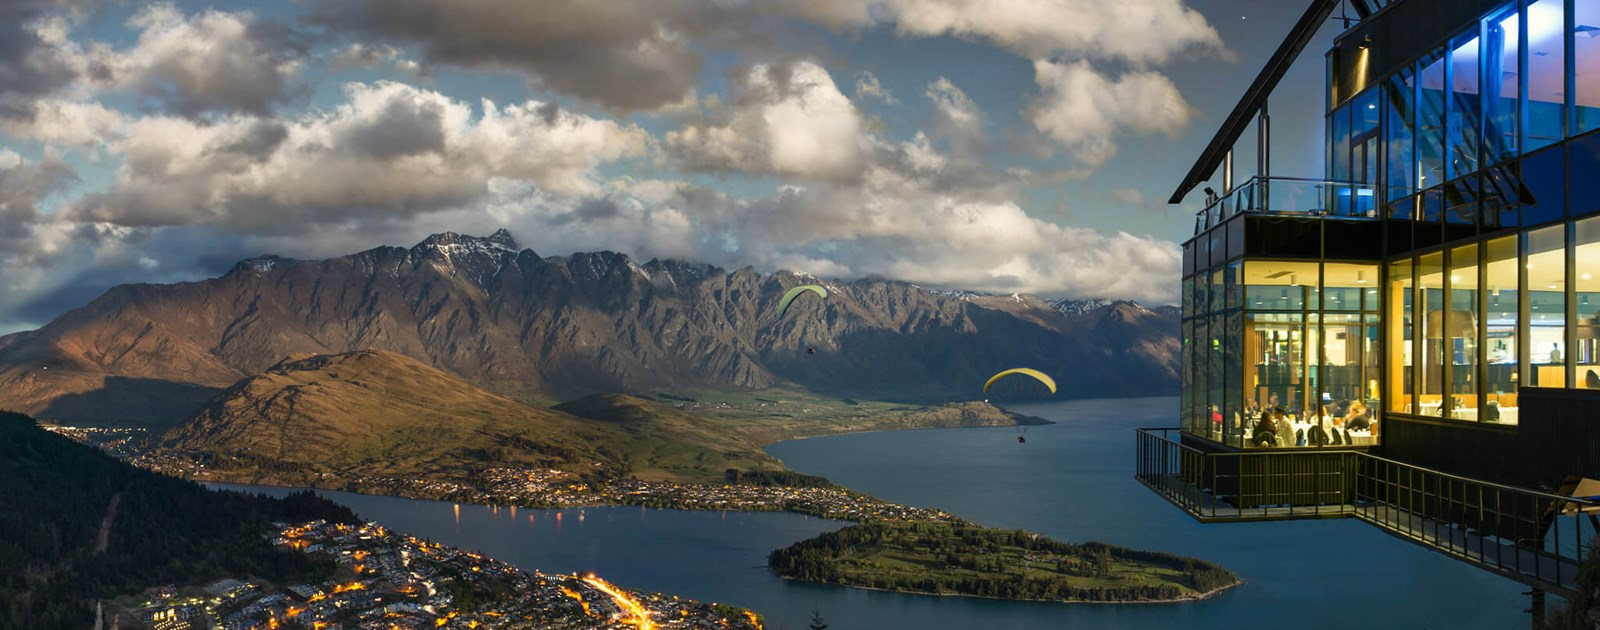 Skyline Queenstowns, Stratosfare Restaurant overlooking paragliders and Queenstown as the sun sets.